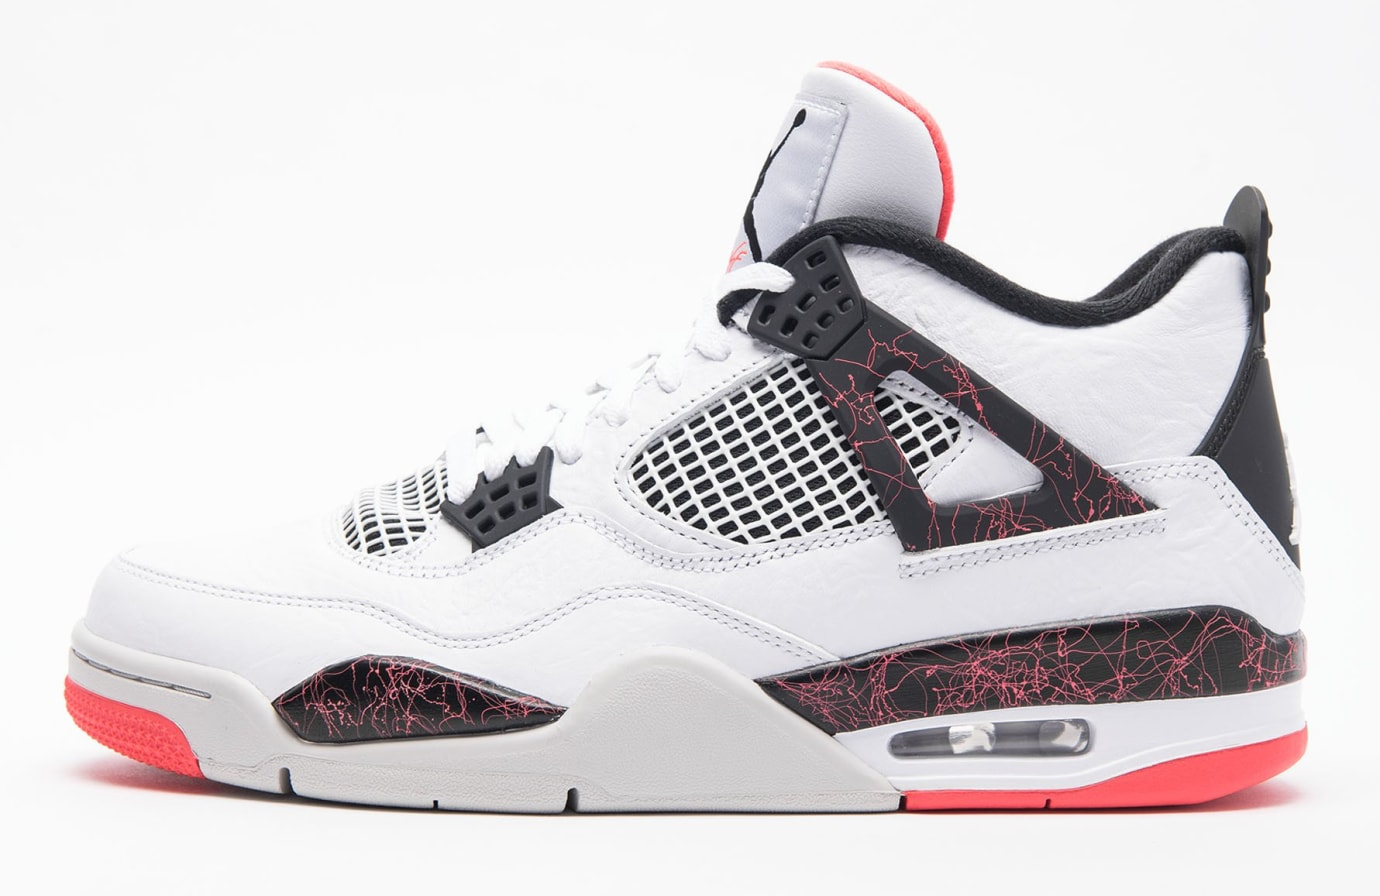 new product 78fac 3778e Air Jordan 4 Retro 'White/Black-Light Crimson-Pale Citron ...